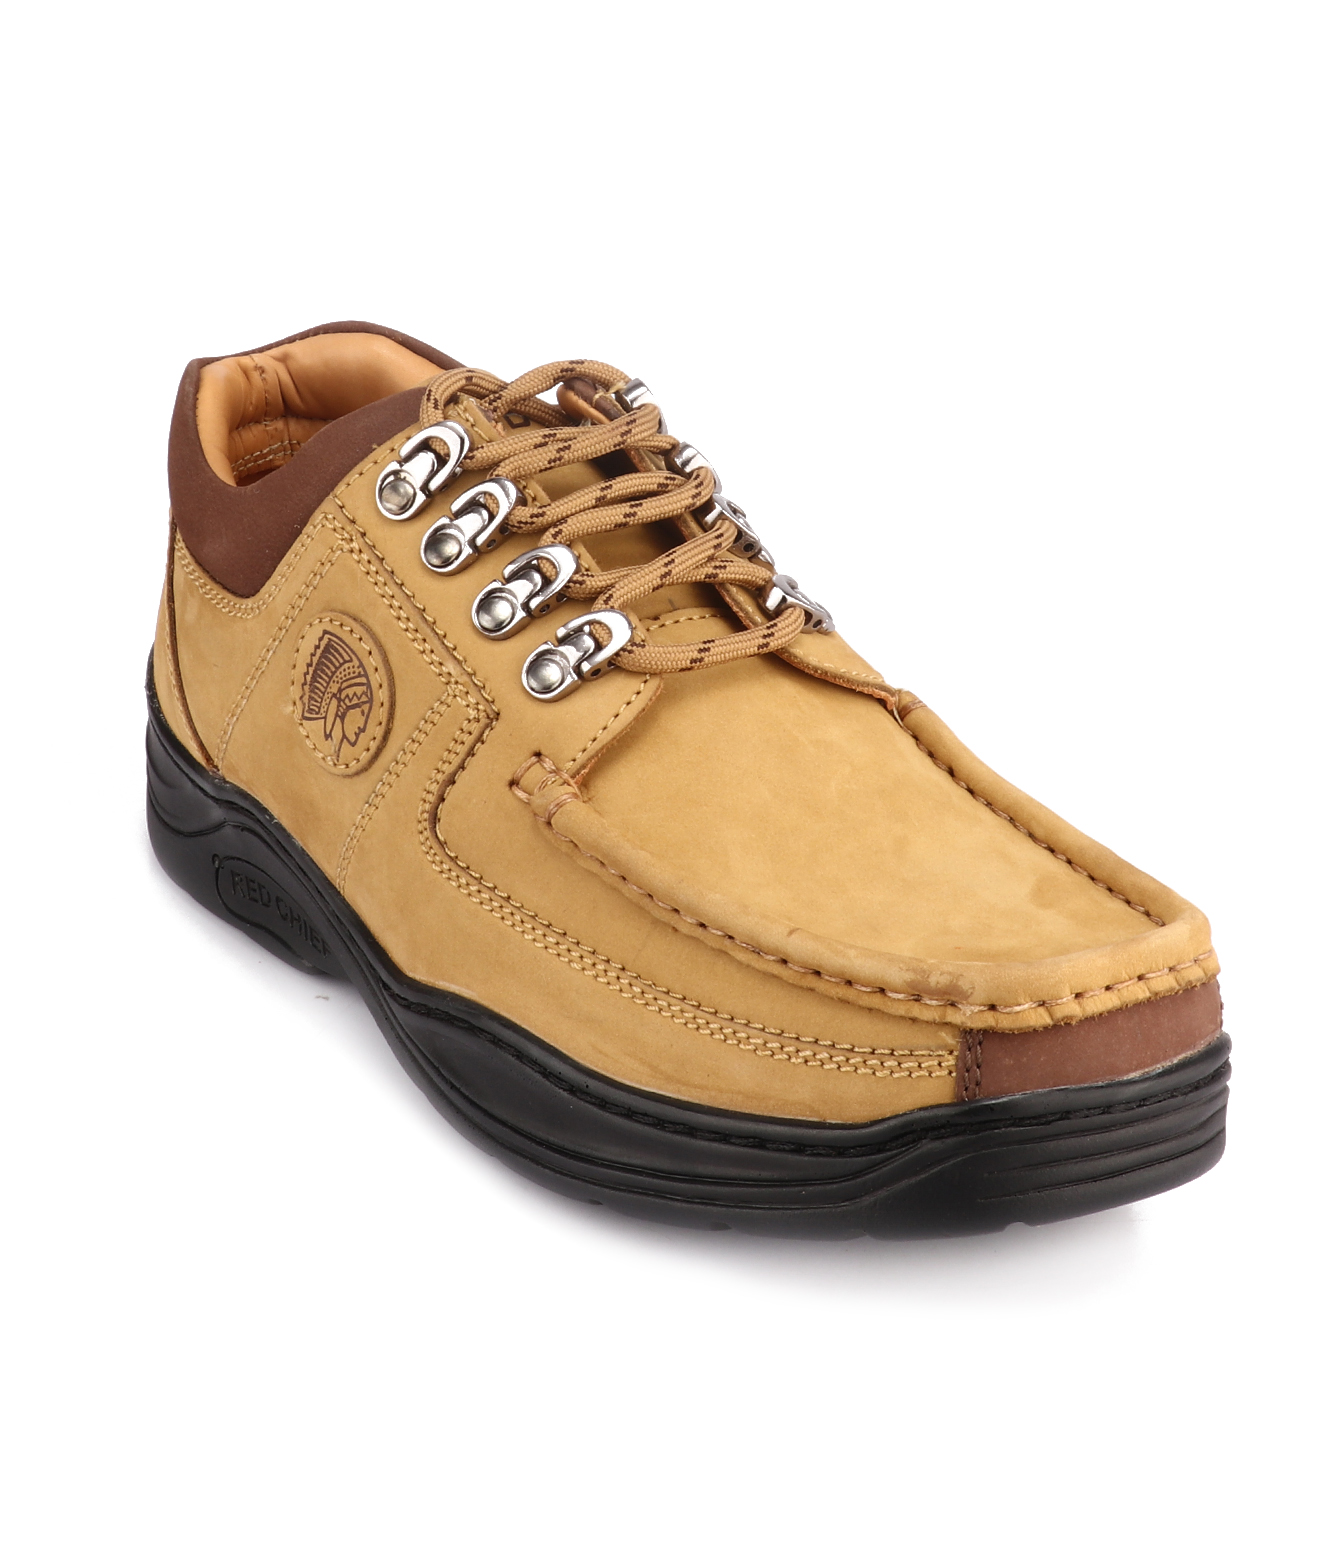 RED CHIEF | RCA1200 004 - Camel Casual Lace-ups